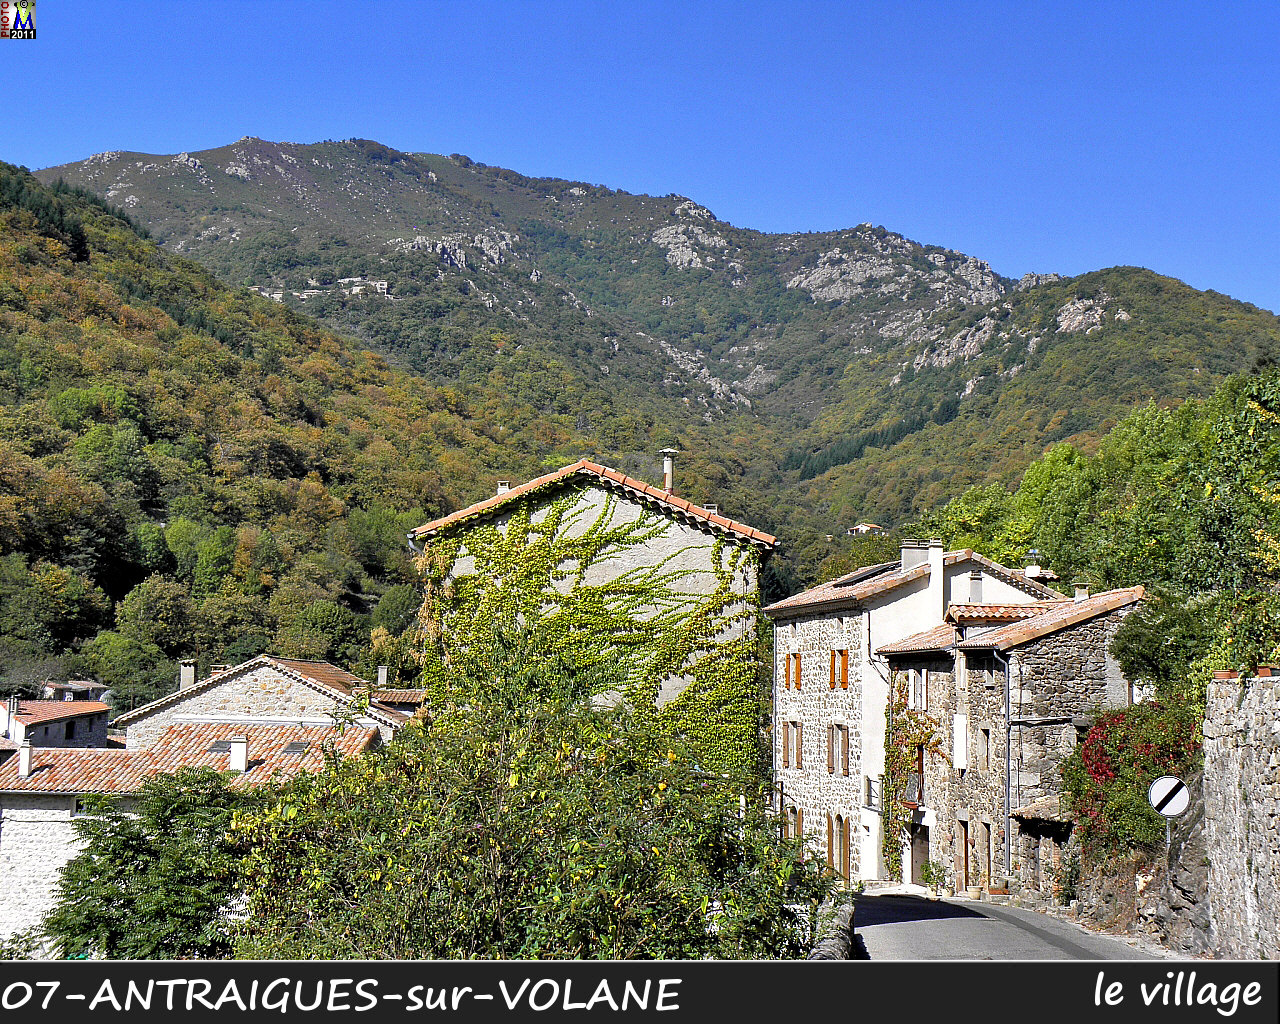 07ANTRAIGUES-VOLANE_village_130.jpg